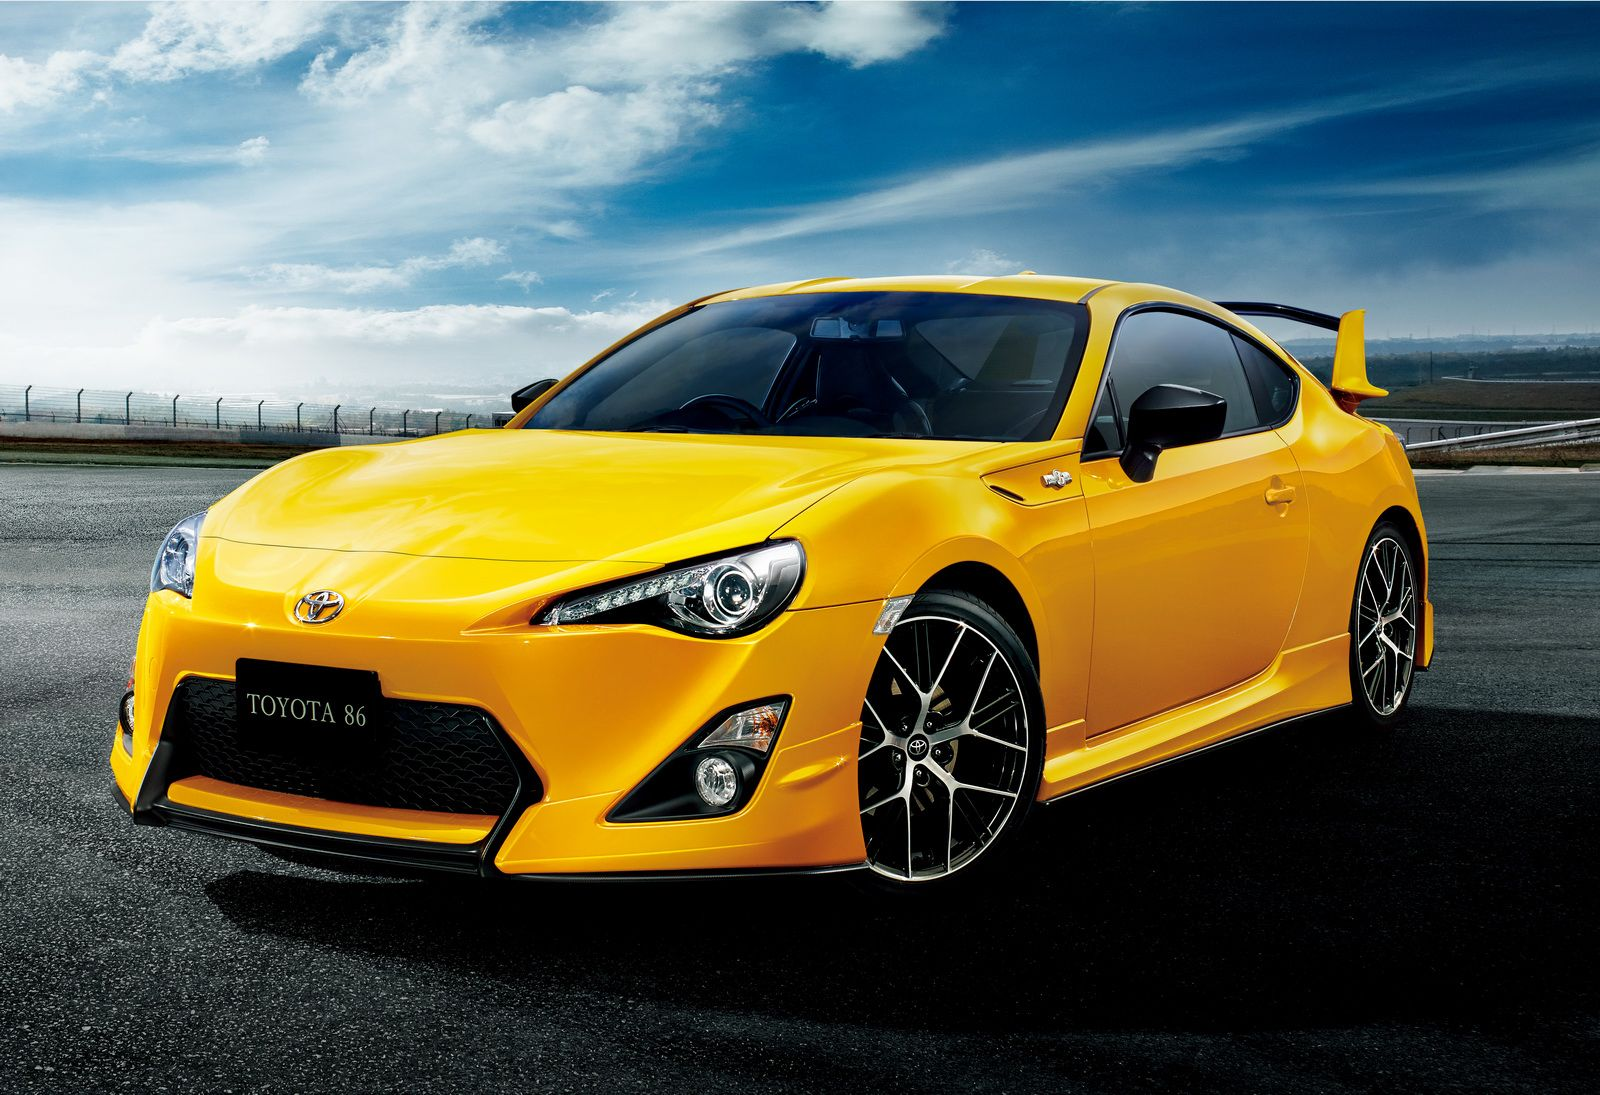 Gallery Toyota Gt86 Yellow Edition 10 Photos Toyota Gt86 Toyota 86 Toyota Cars